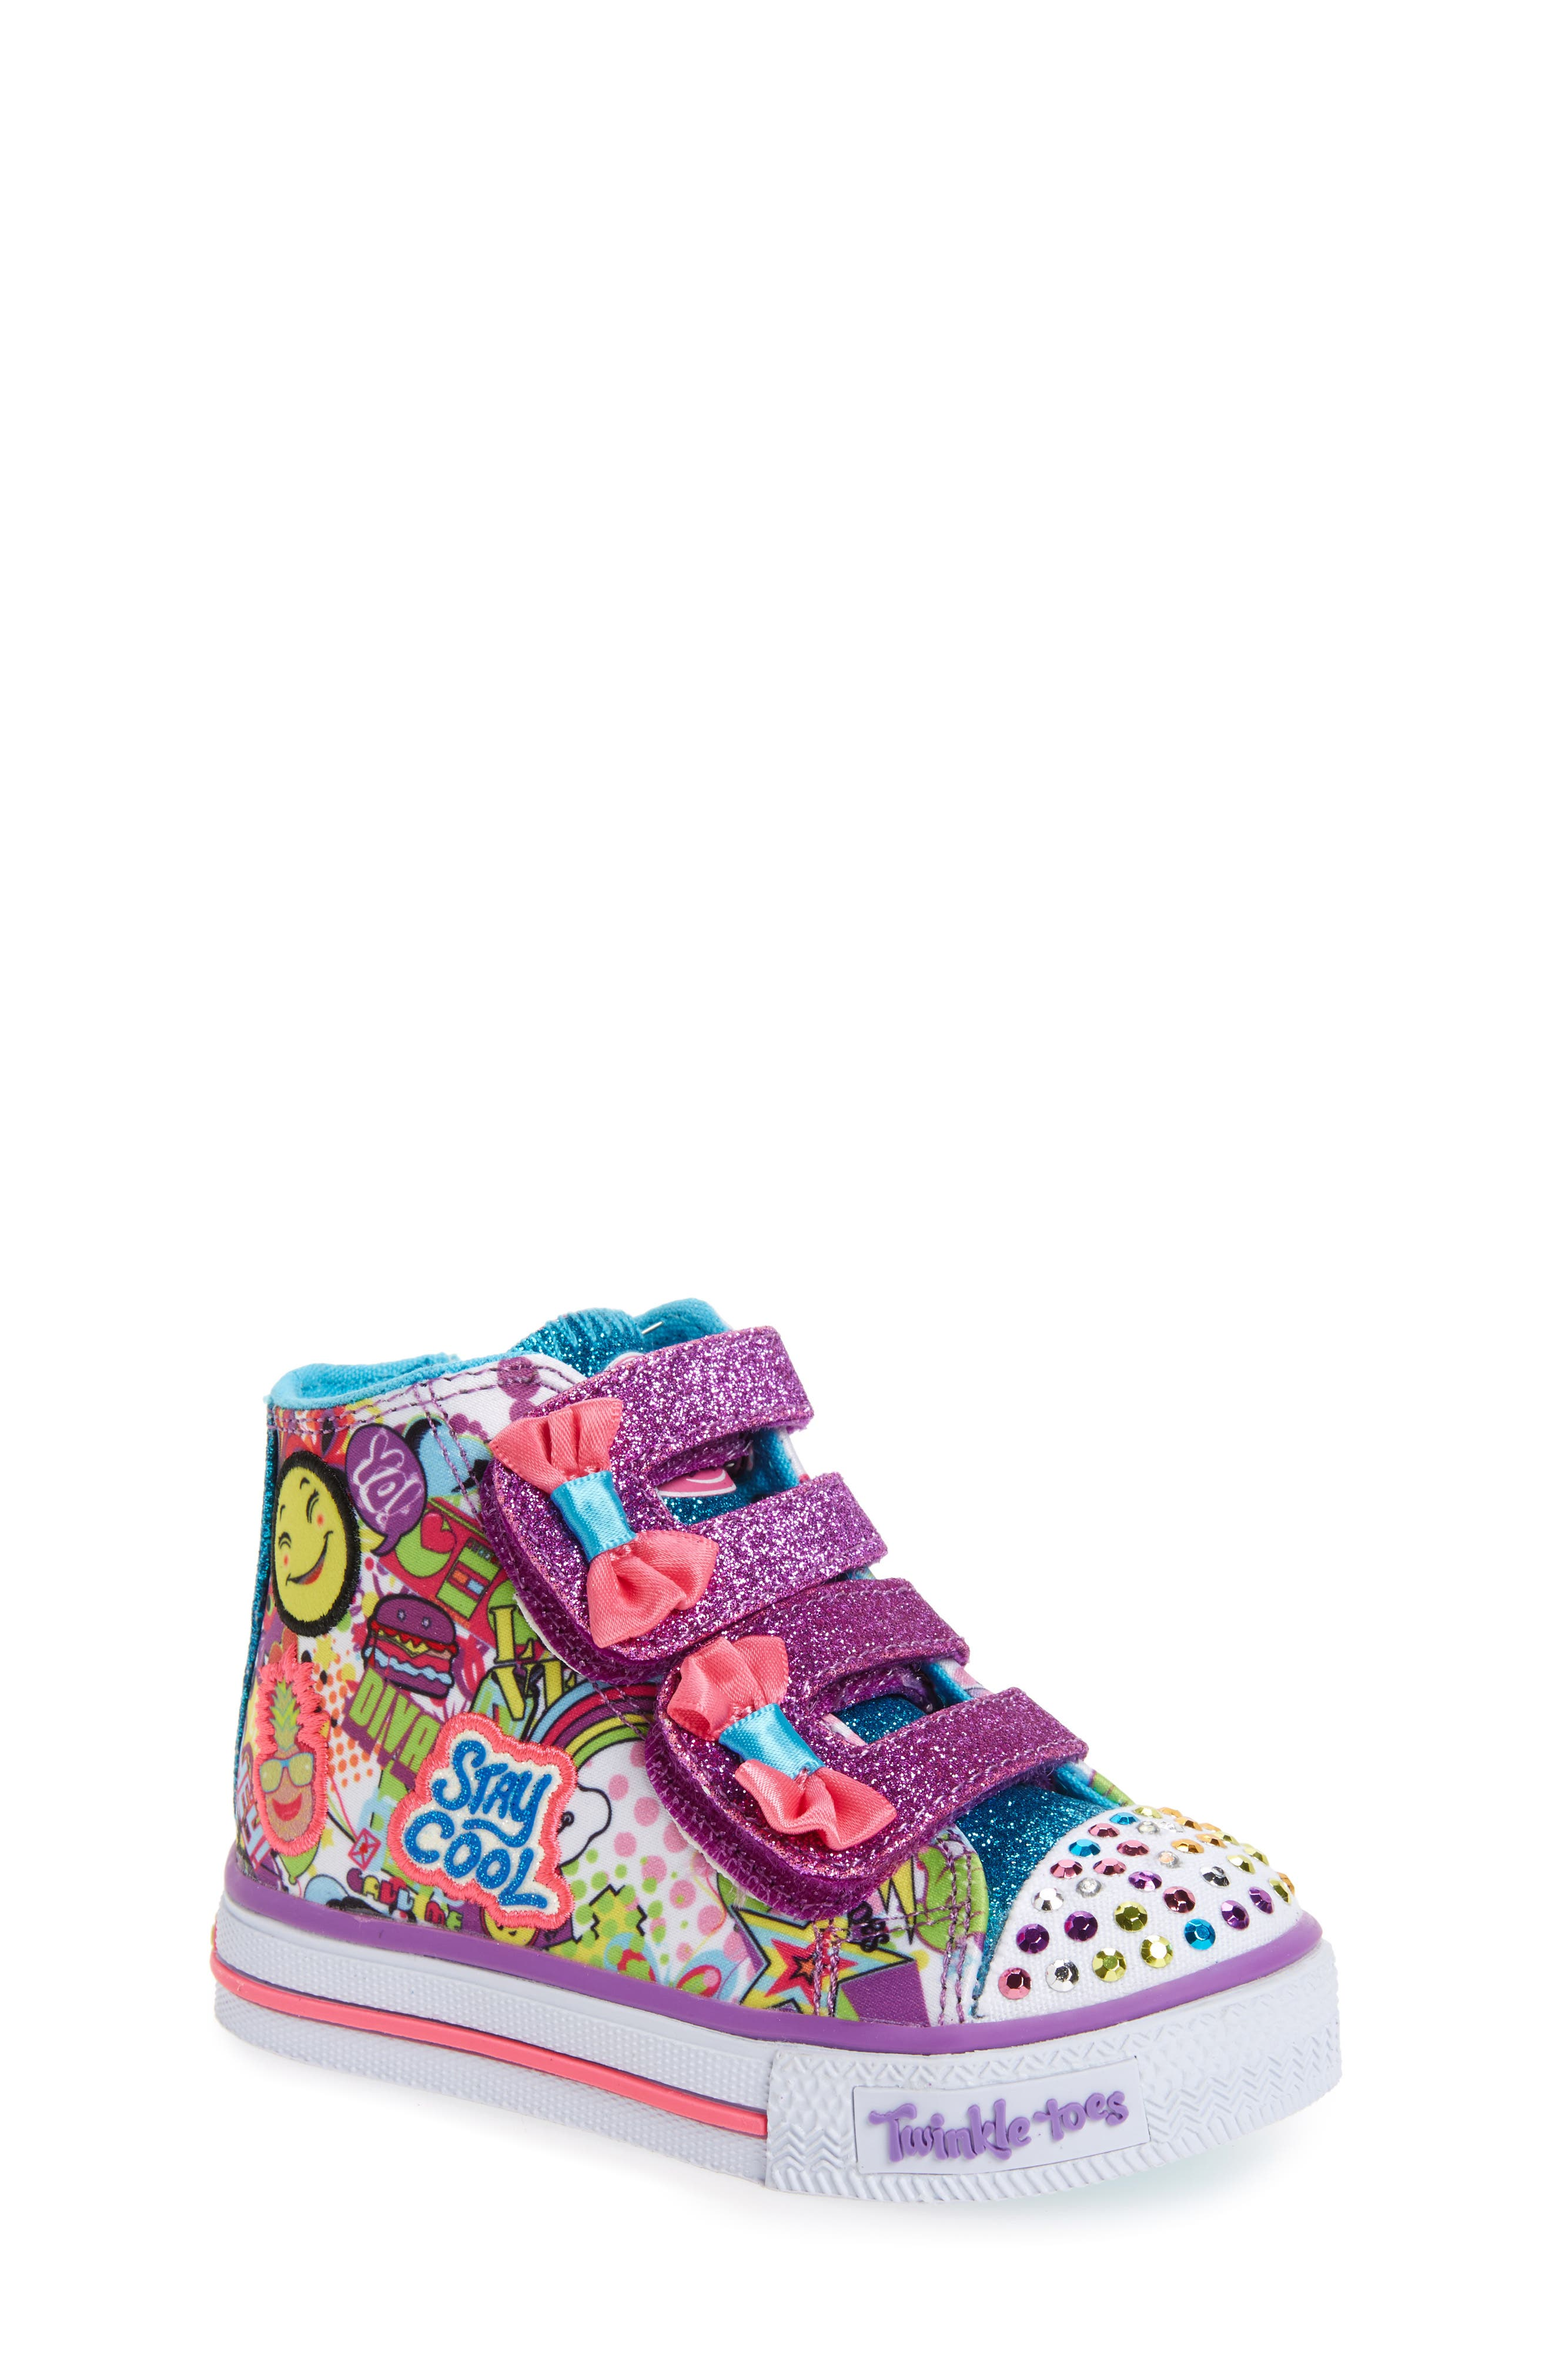 Twinkle Toes Shuffles Light-Up Sneaker,                         Main,                         color, 484